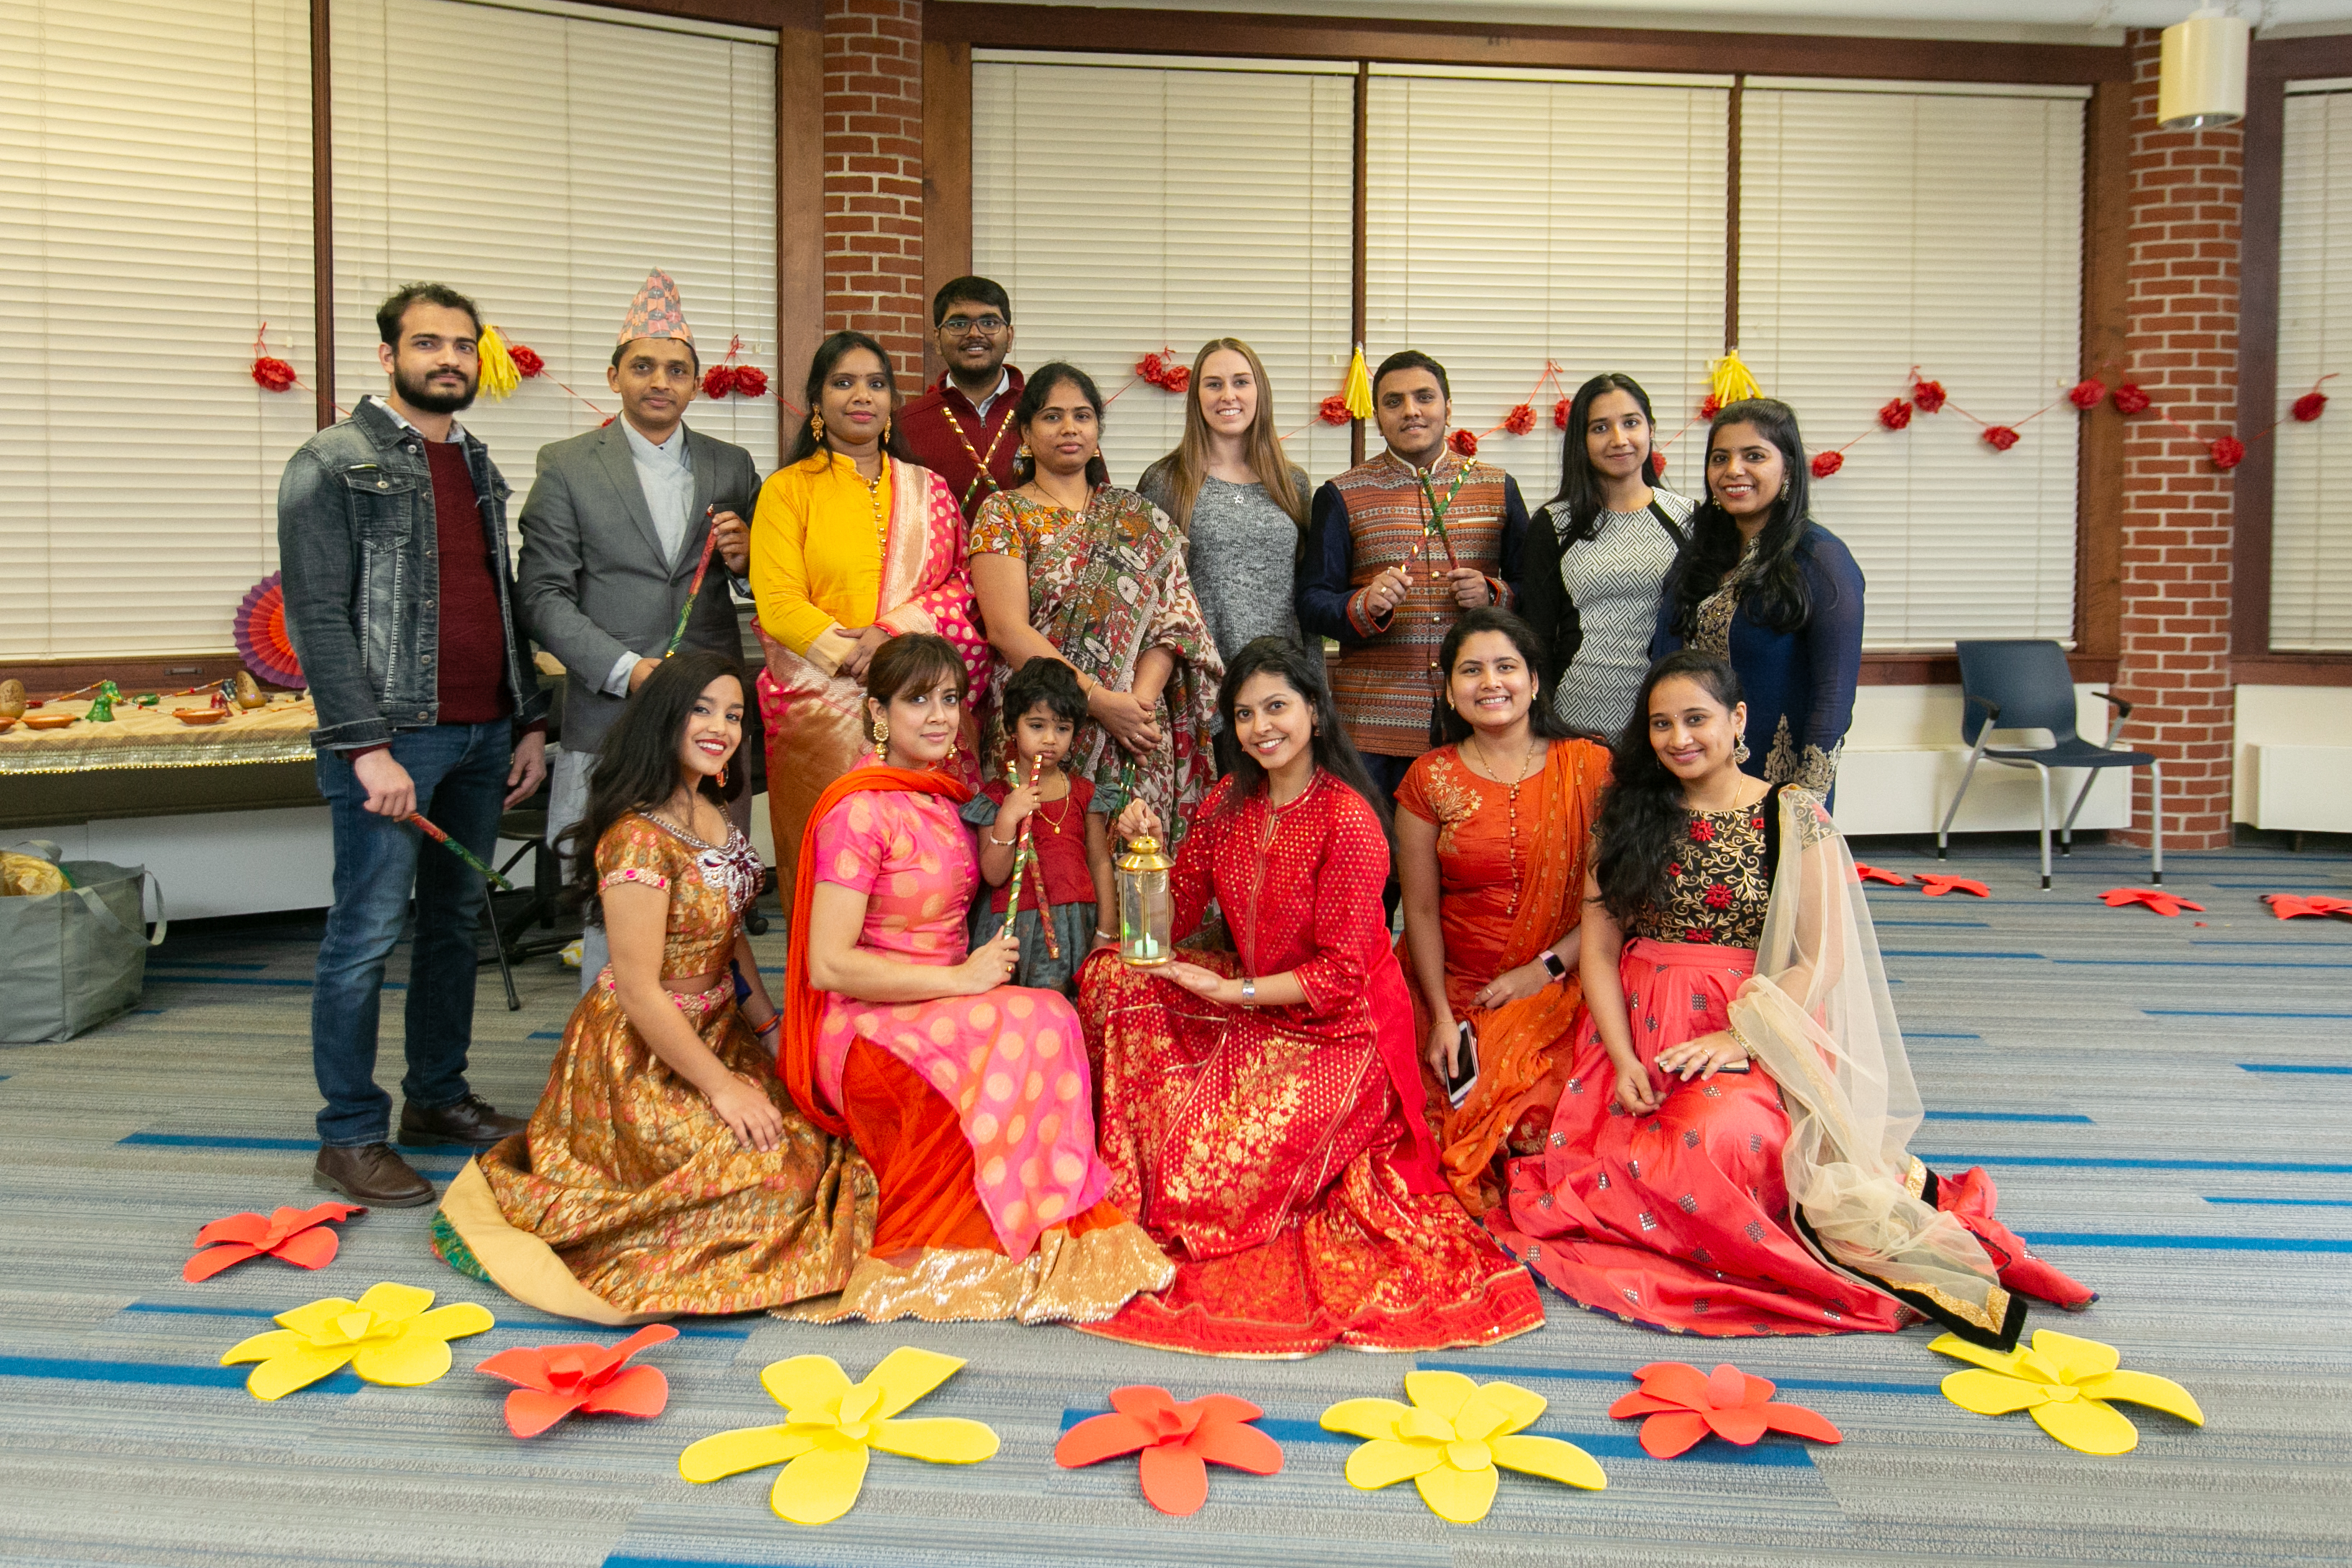 Diwali%20Celebration-2779.jpg